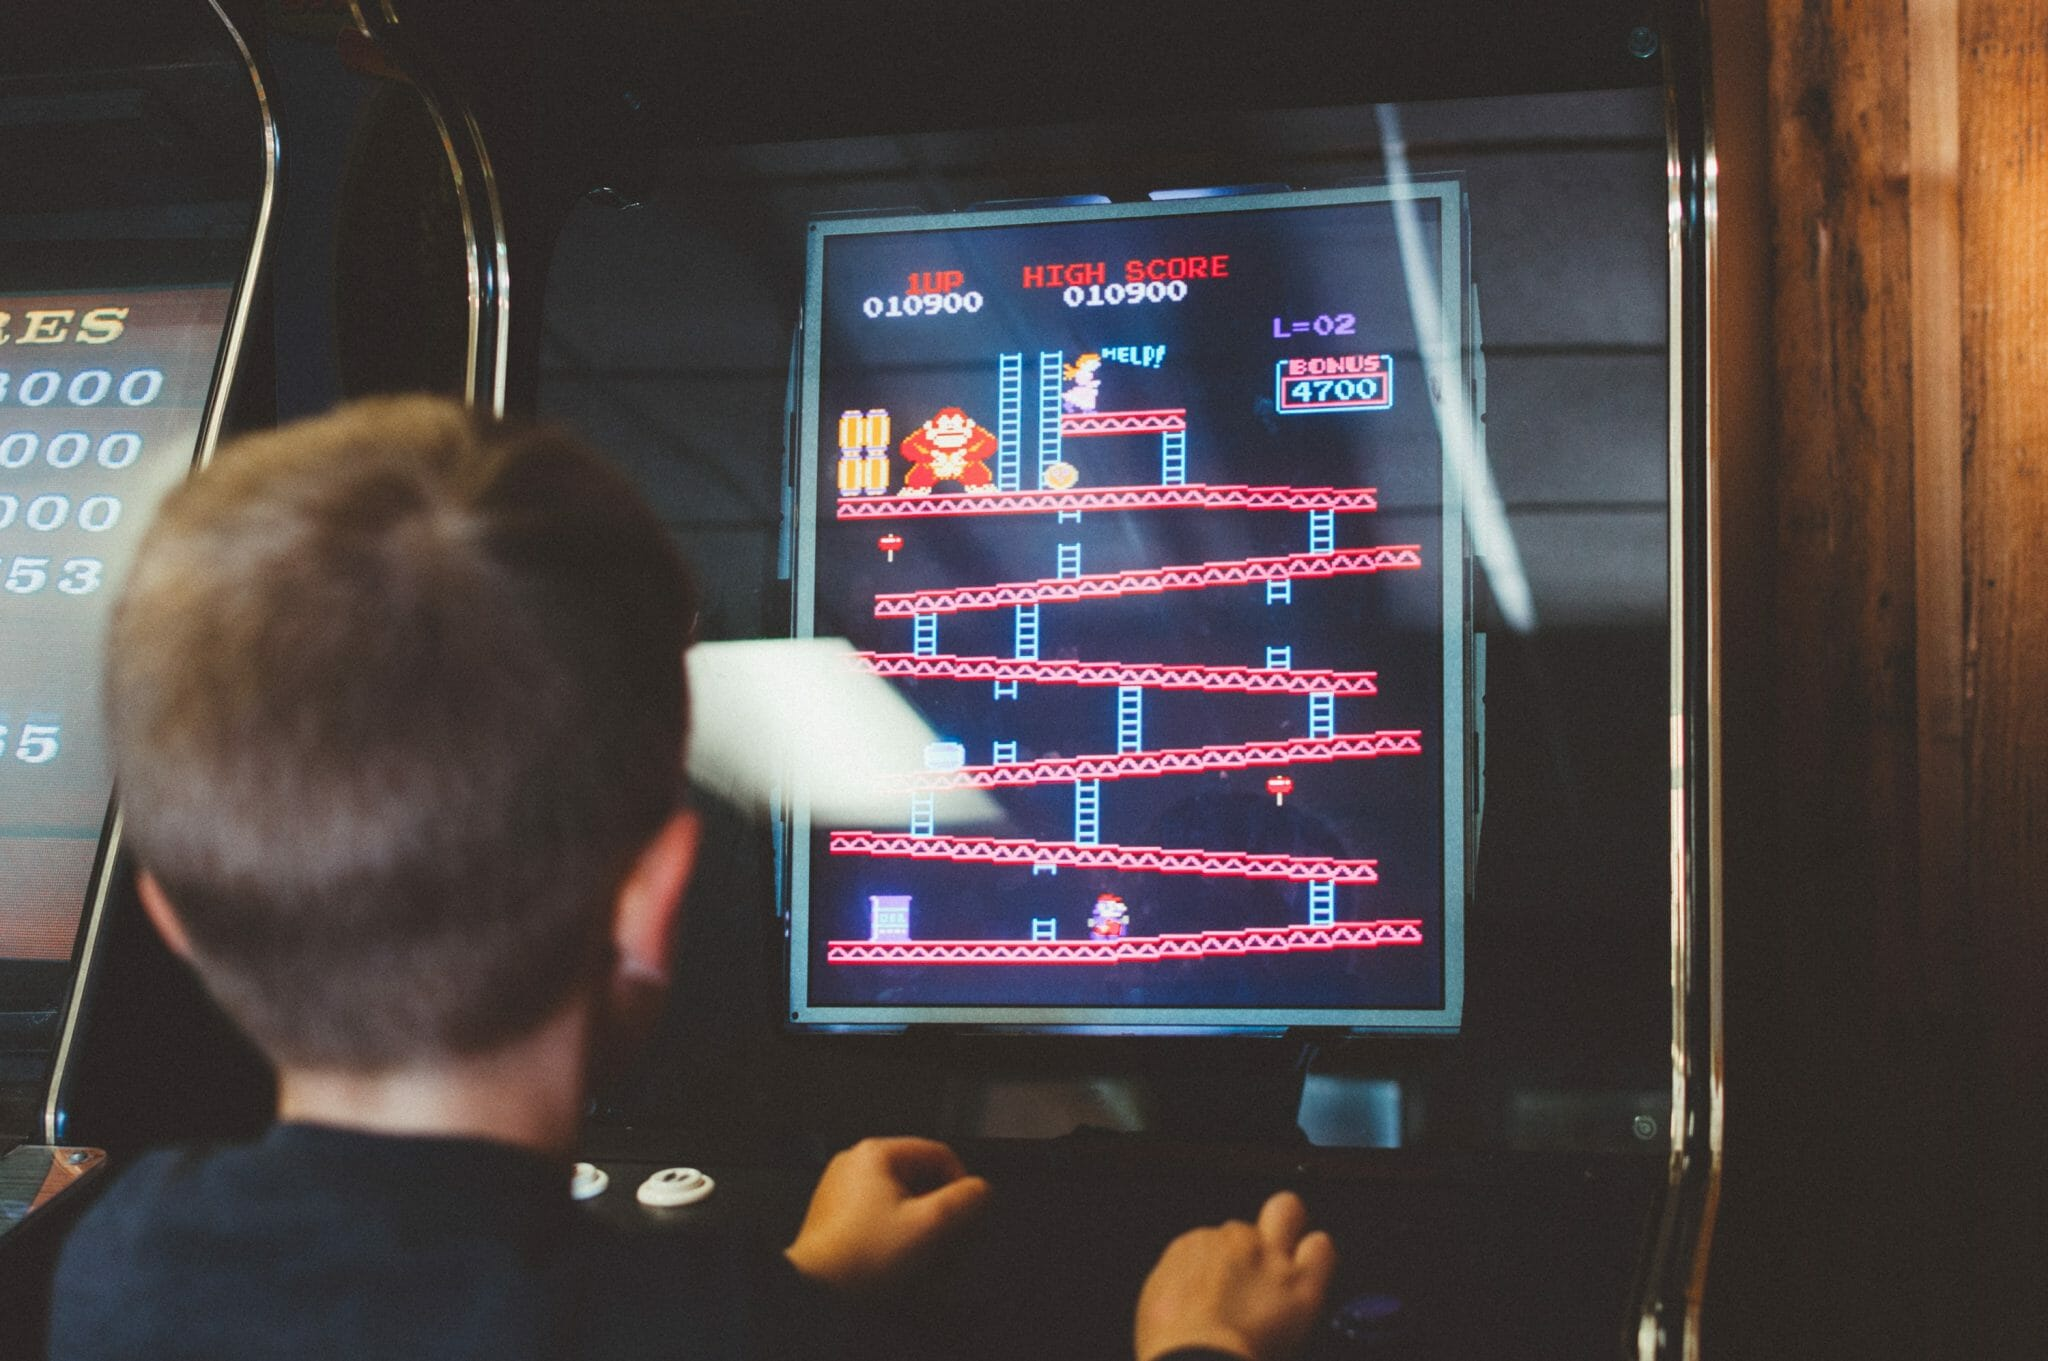 A Retro game being played